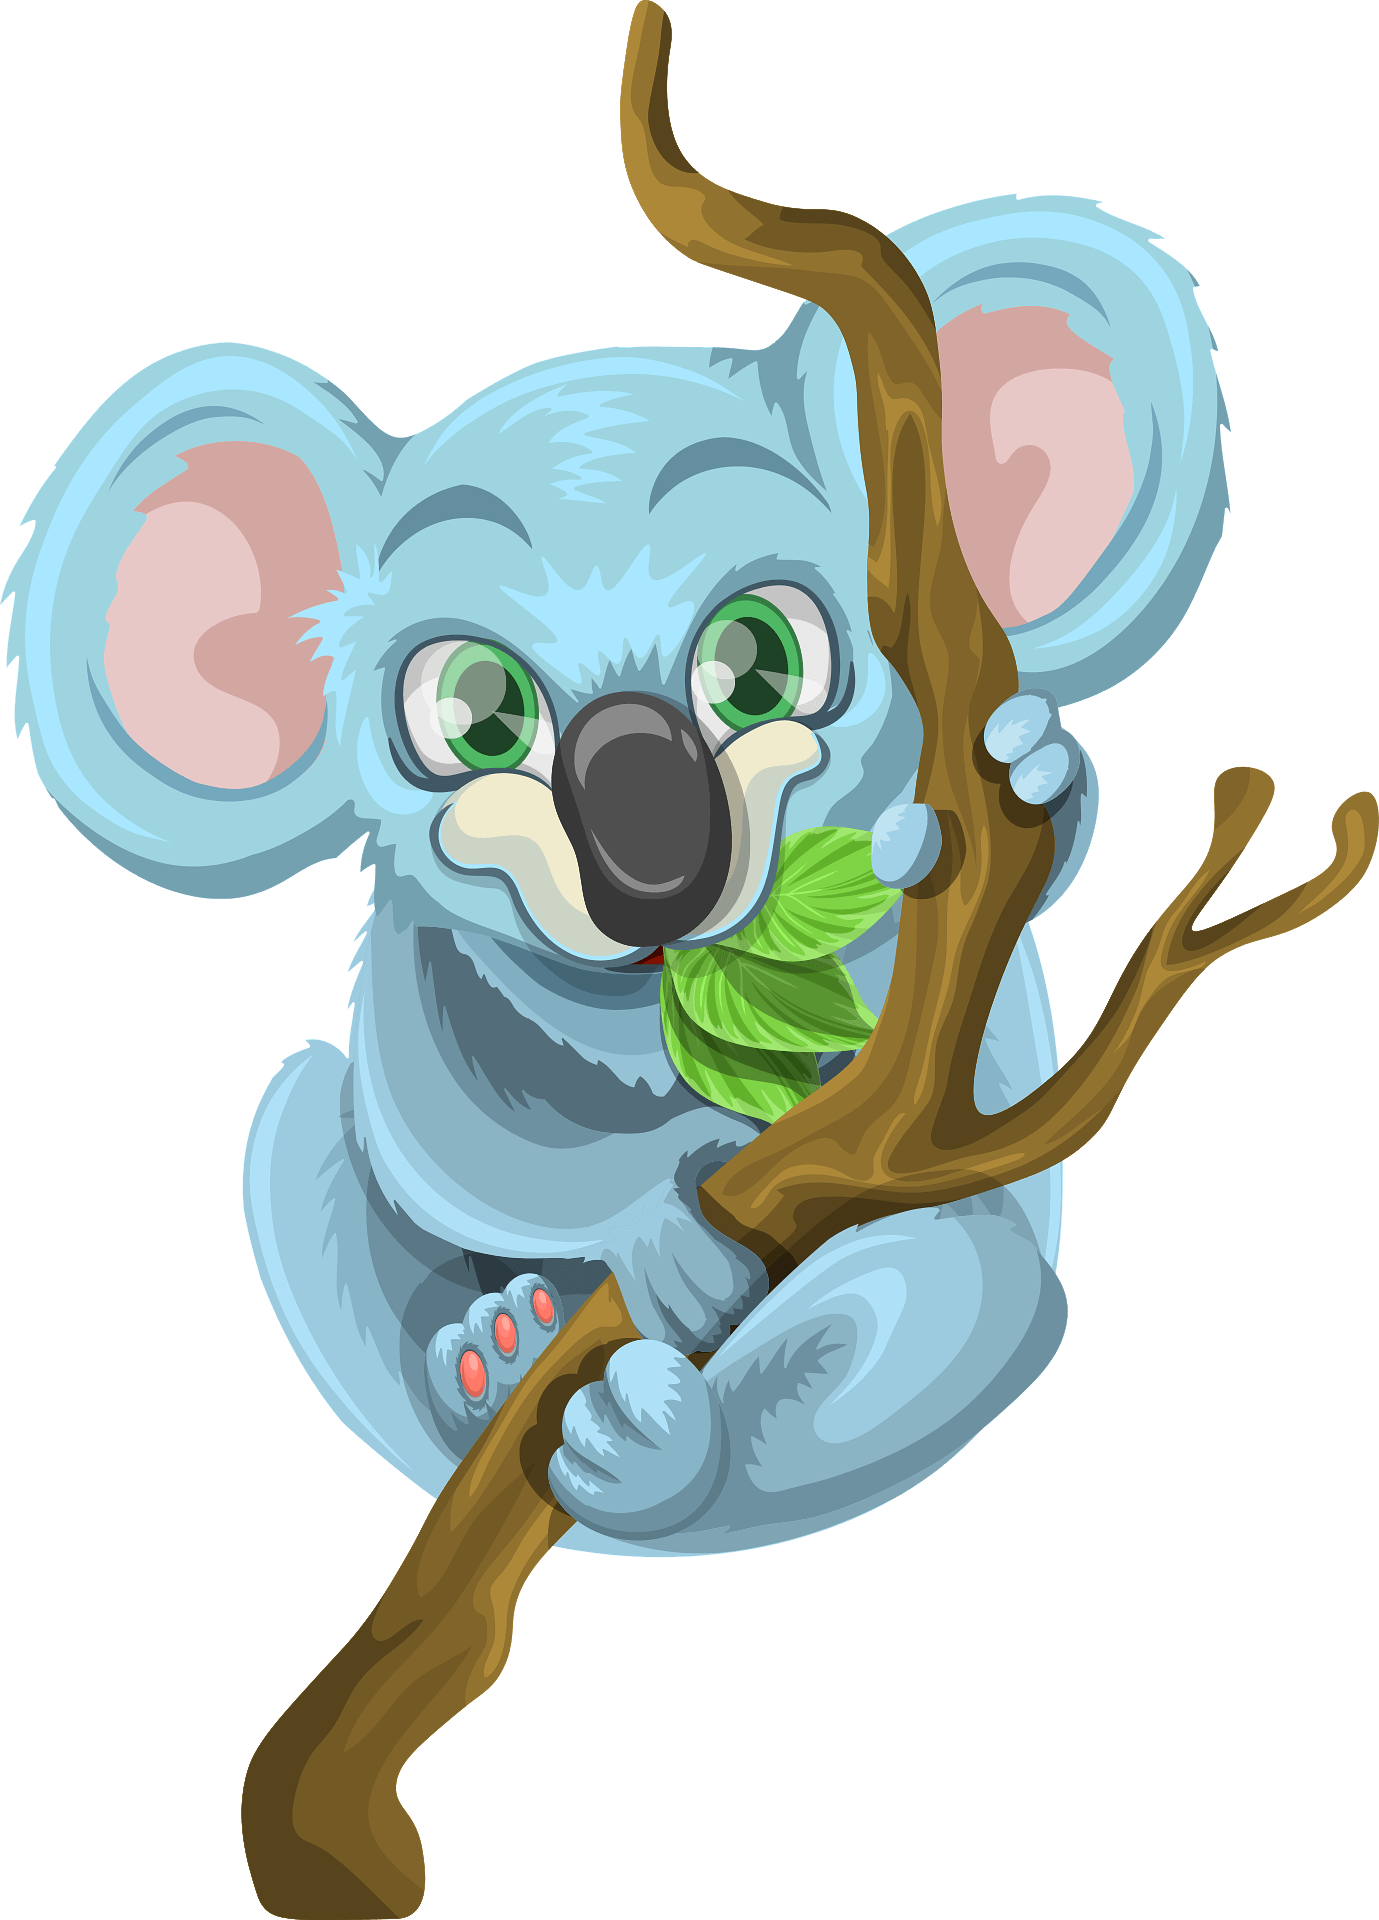 Koala Hugging Tree Clipart Free Download Transparent Png Creazilla Simple vector clip art illustration, kawaii mascot or logo. koala hugging tree clipart free